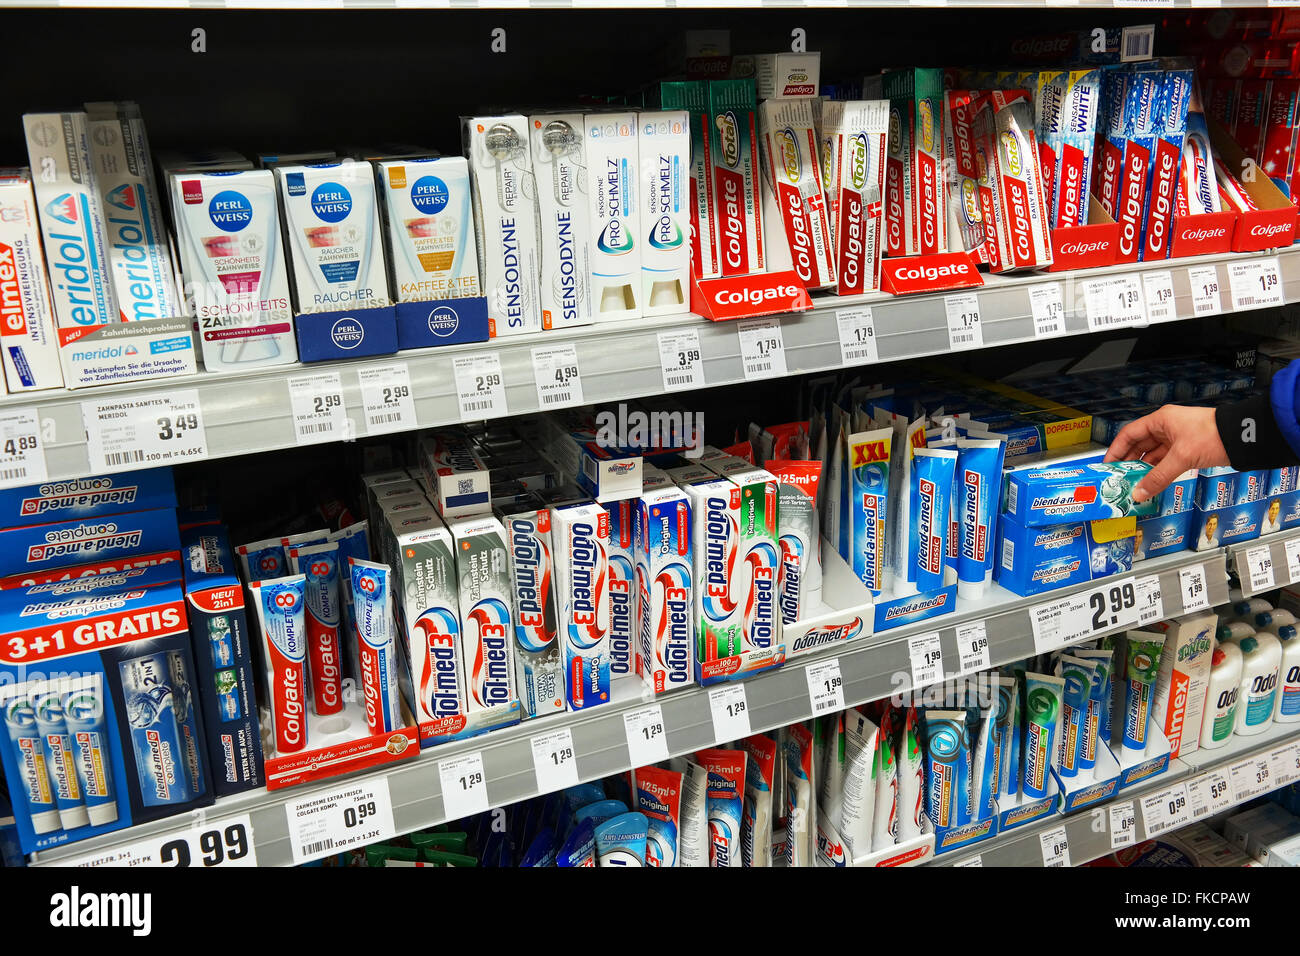 Selecting Toothpaste in a Supermarket - Stock Image